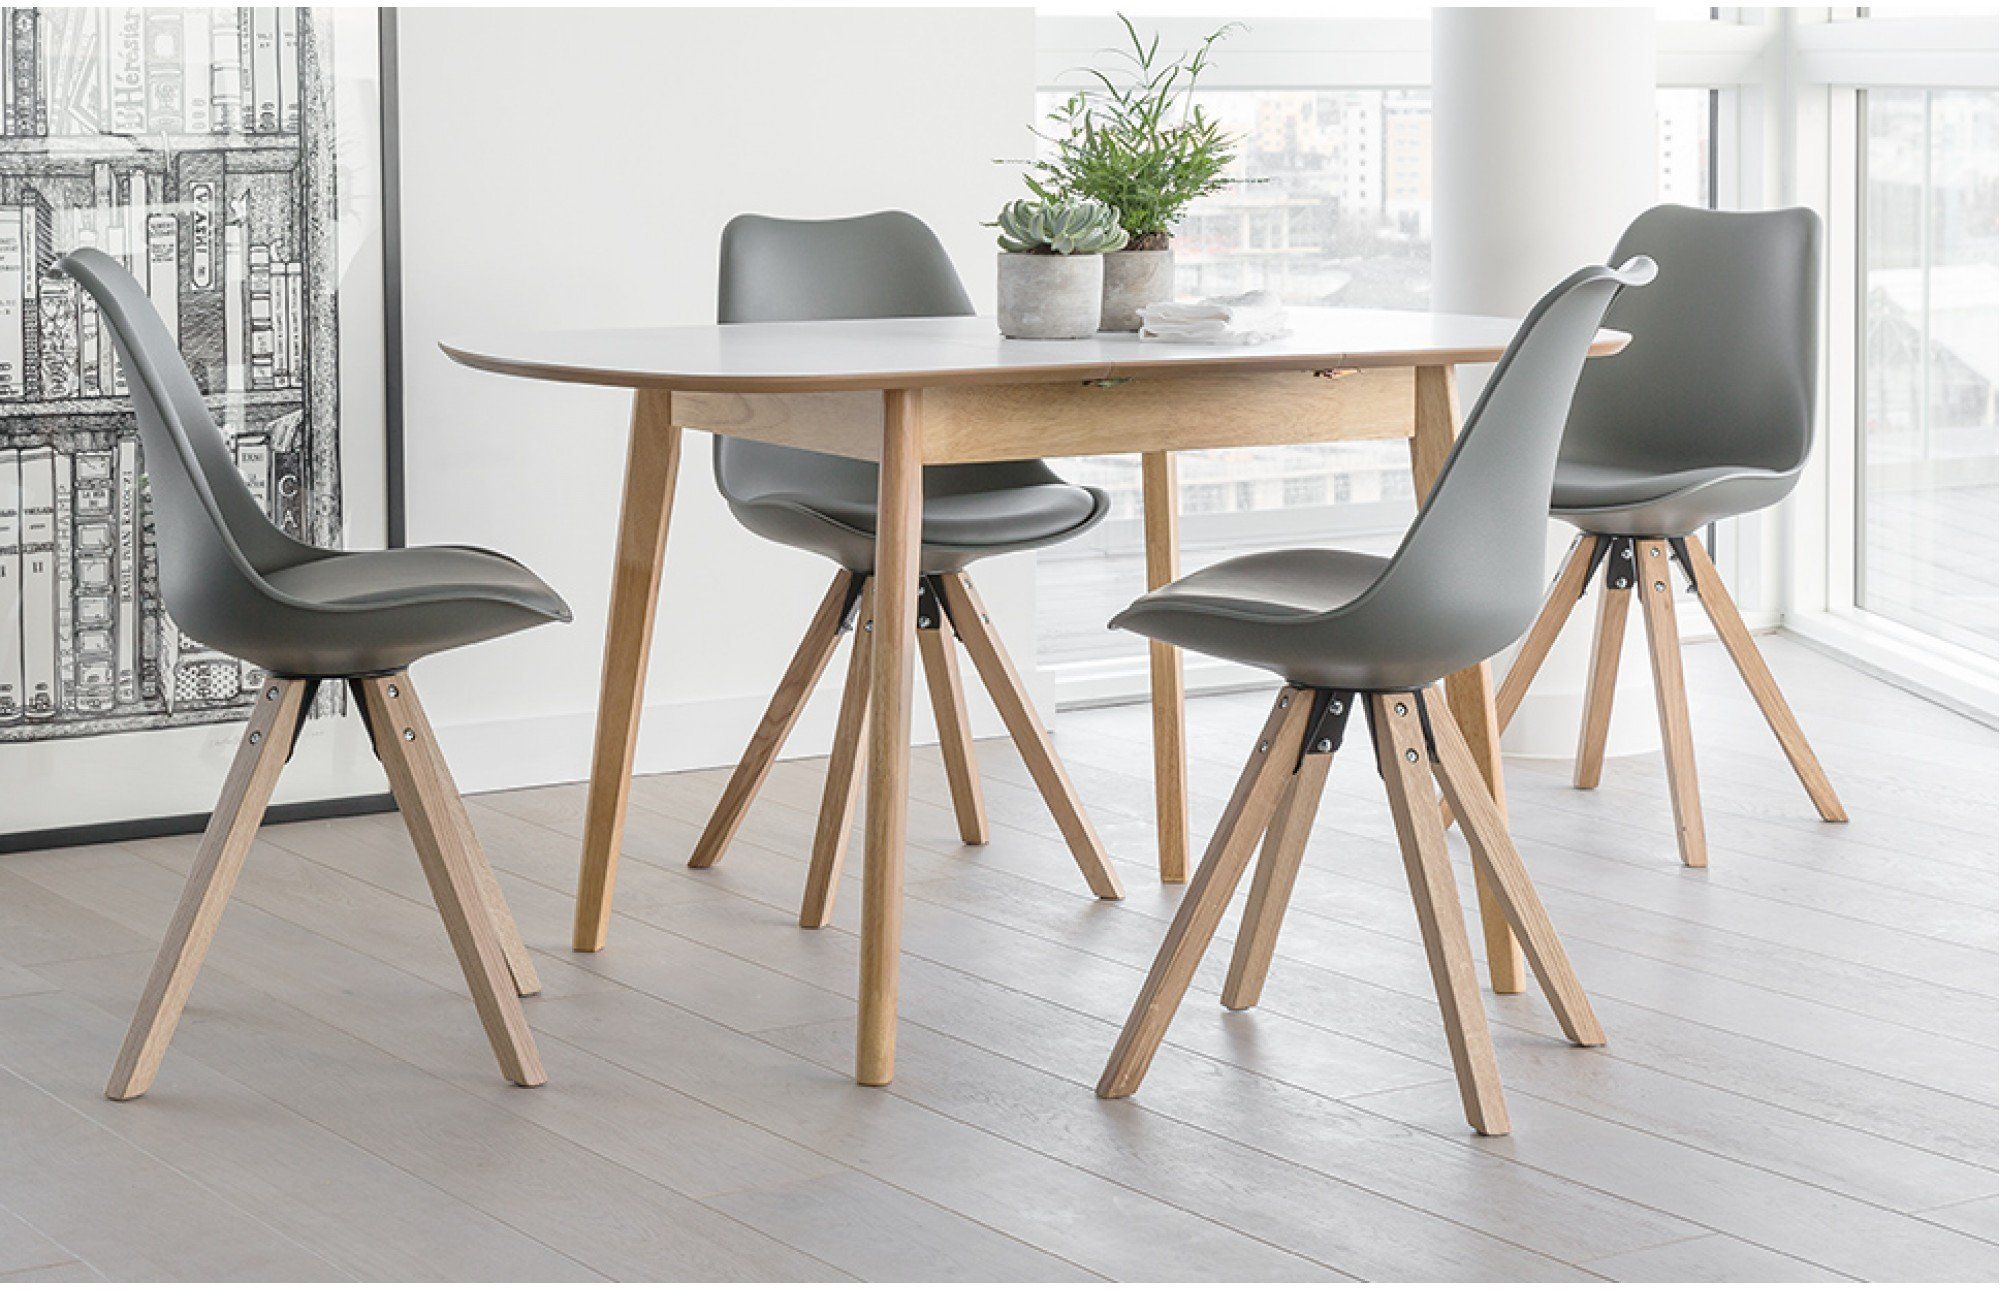 This Trendy Grey Extendable Dining Set Comes With An Extending Table And Four Bojan Dining Chairs Dining Room Small Small Dining Room Table Dining Table Chairs